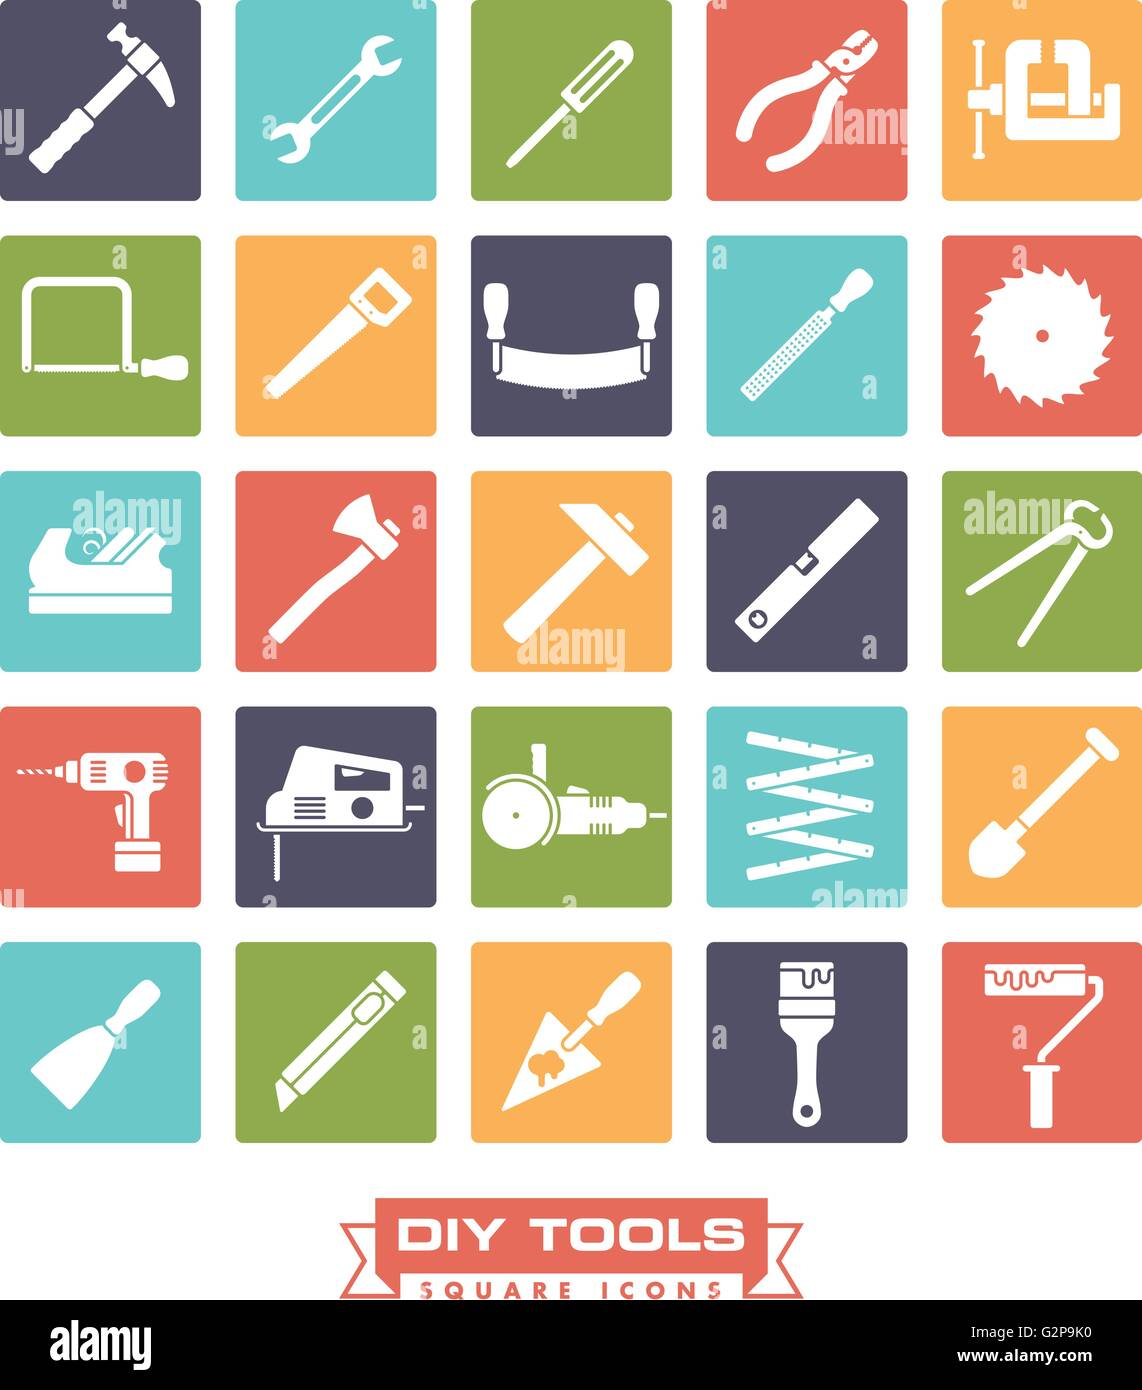 Collection of DIY and crafting tool vector icons, negative in colored squares - Stock Vector